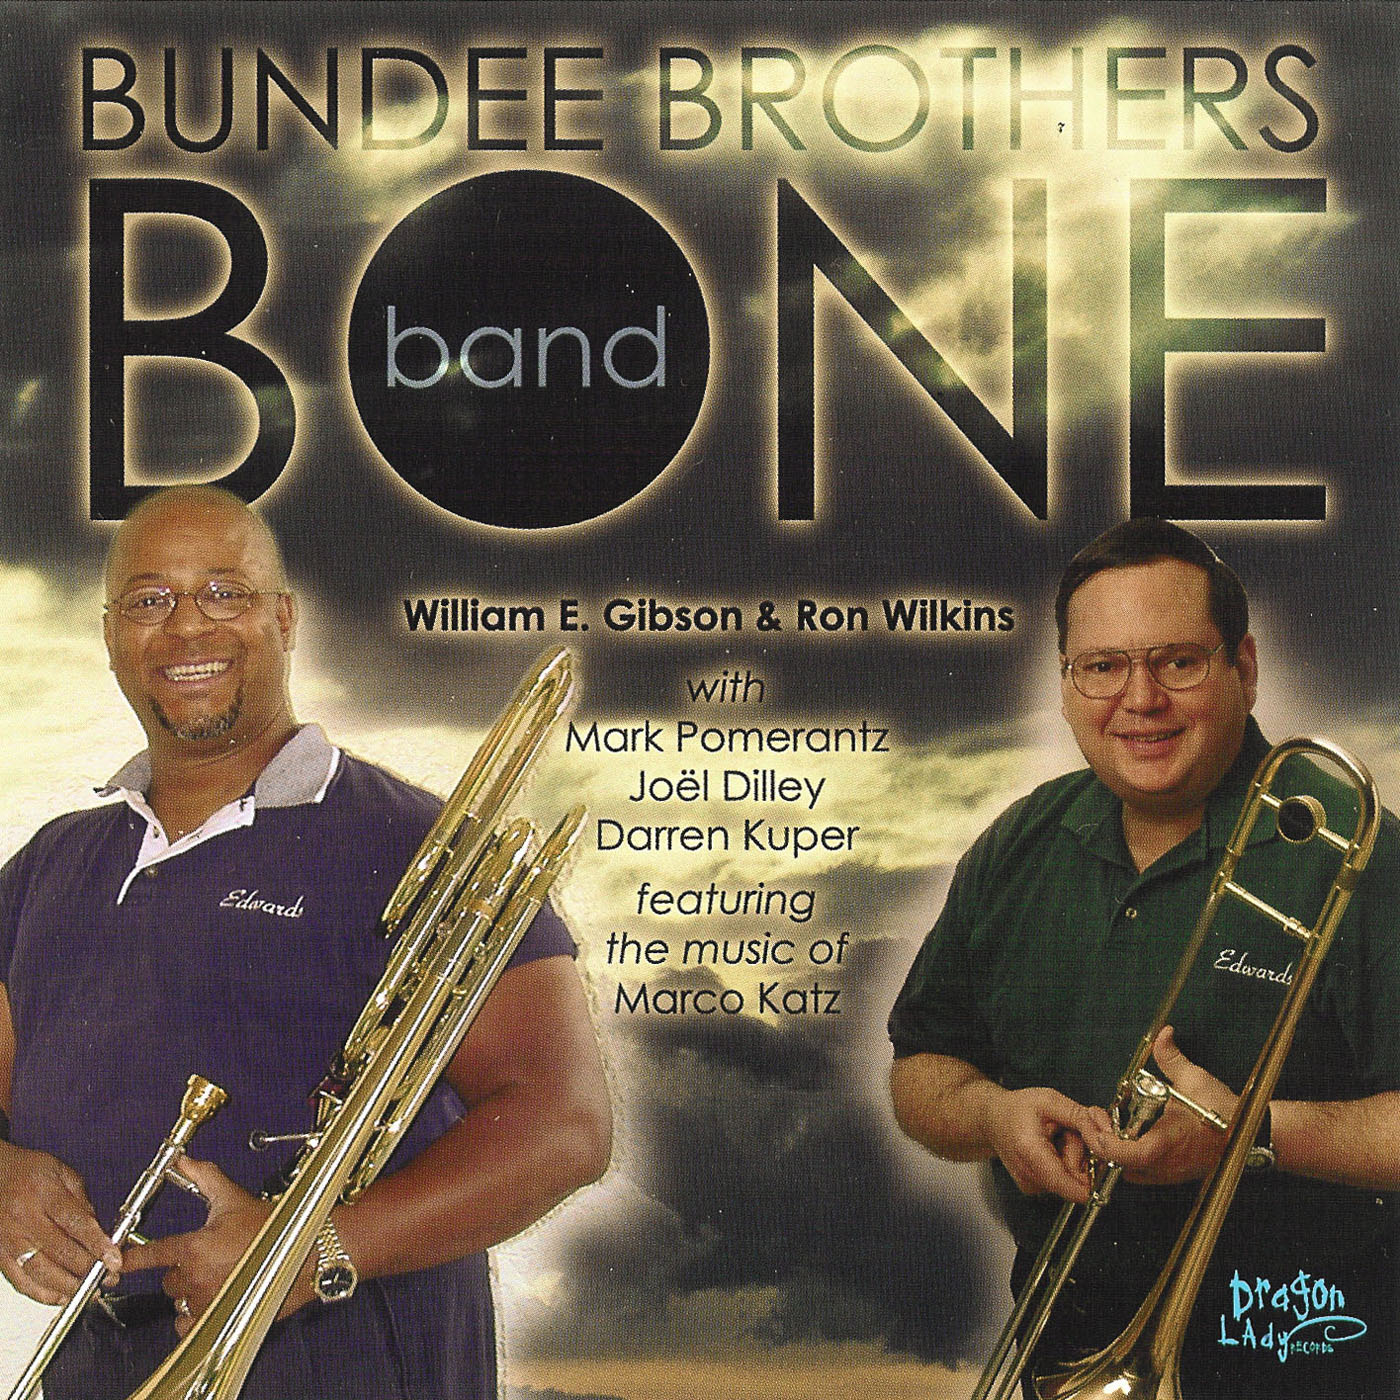 Bundee Brothers Bone Band